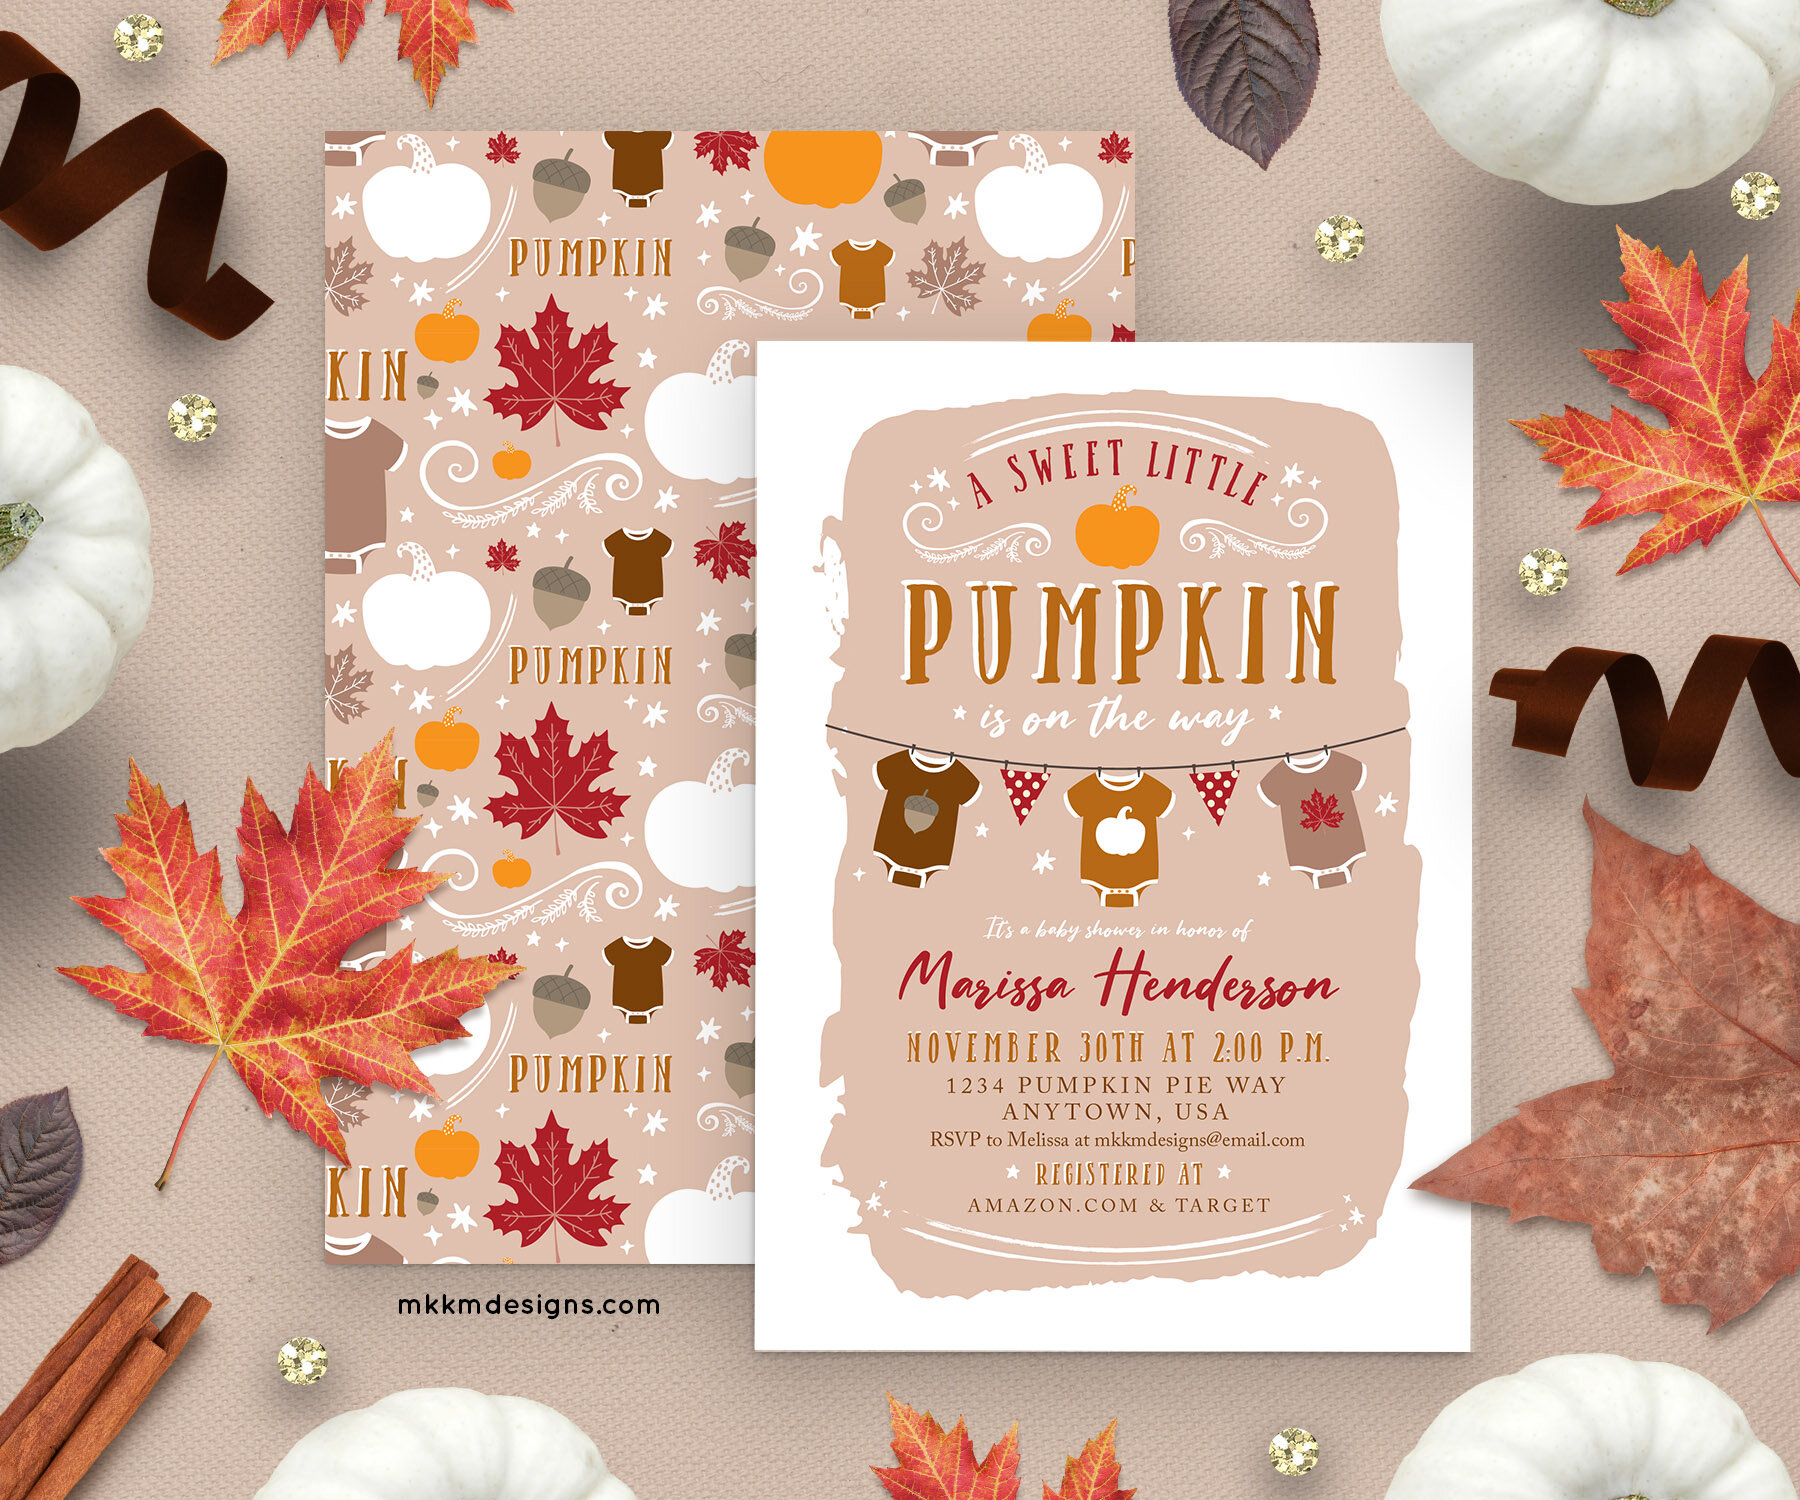 Sweet little pumpkin baby shower invitations. This rustic invitation is perfect for a gender neutral baby shower.